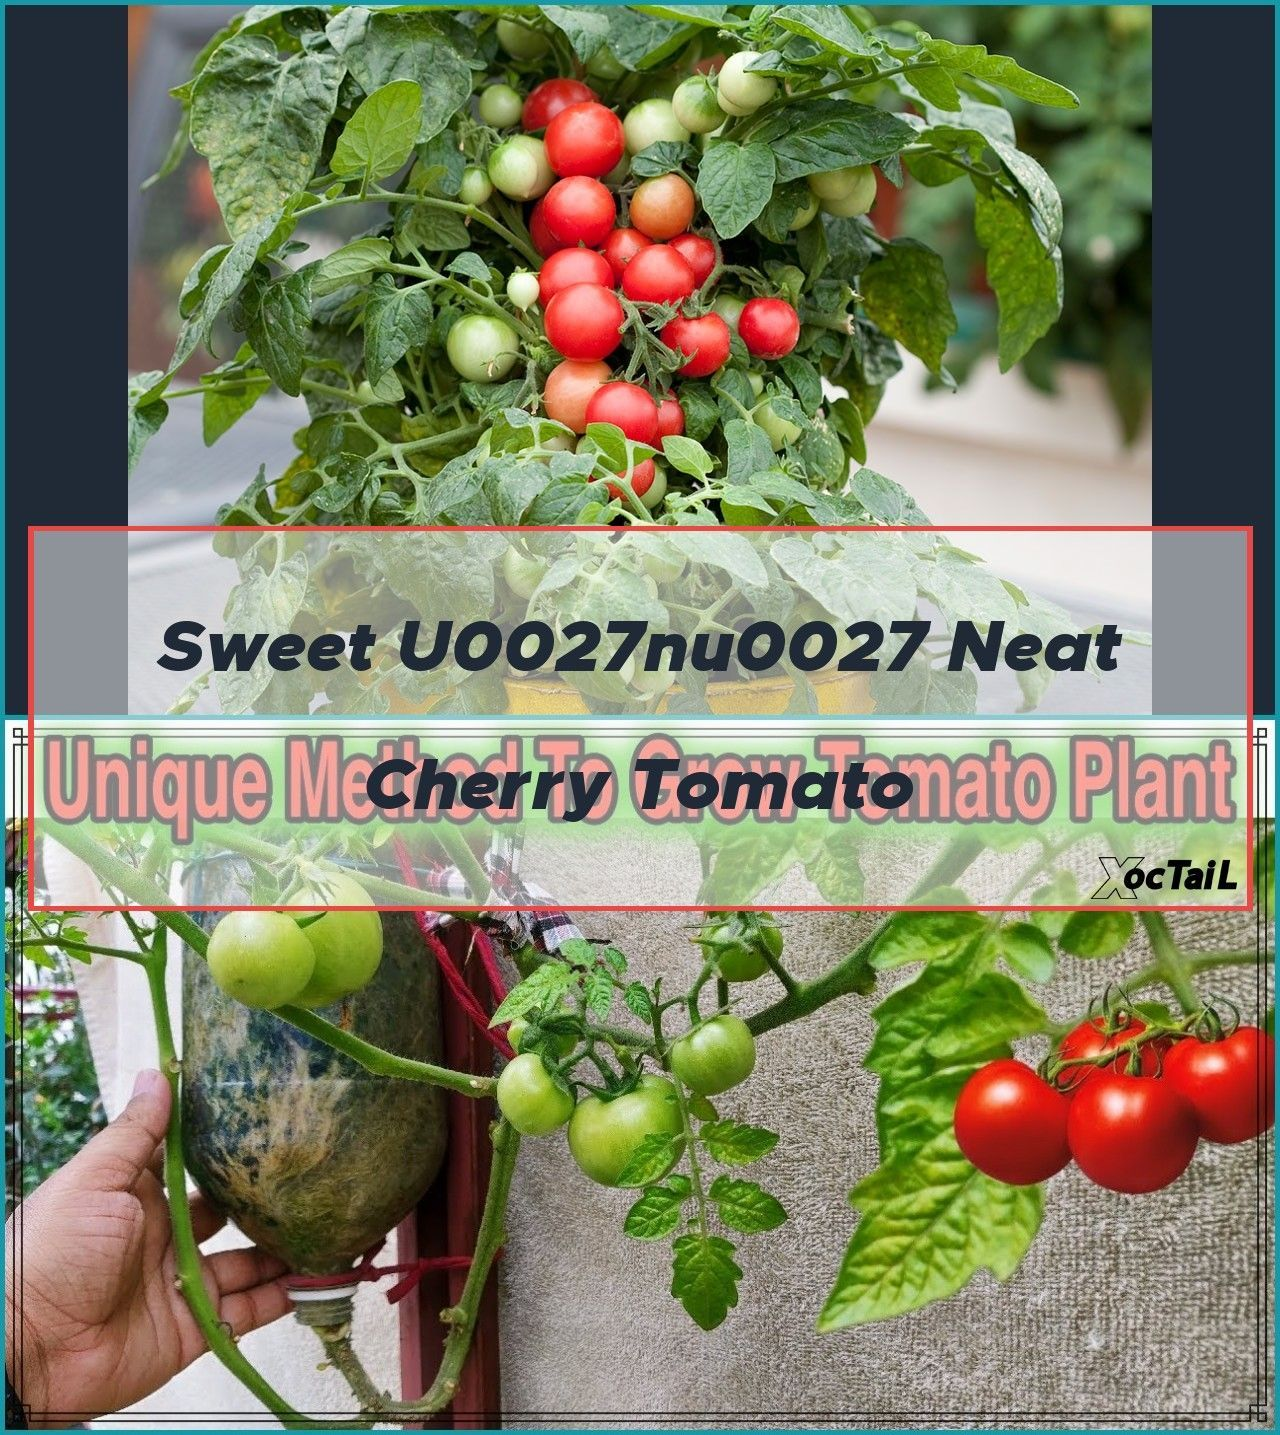 Best Method To Grow Tomato Plant In Plastic Hanging Bottle In 2020 Growing Tomatoes Cherry Tomato Plant Tomato